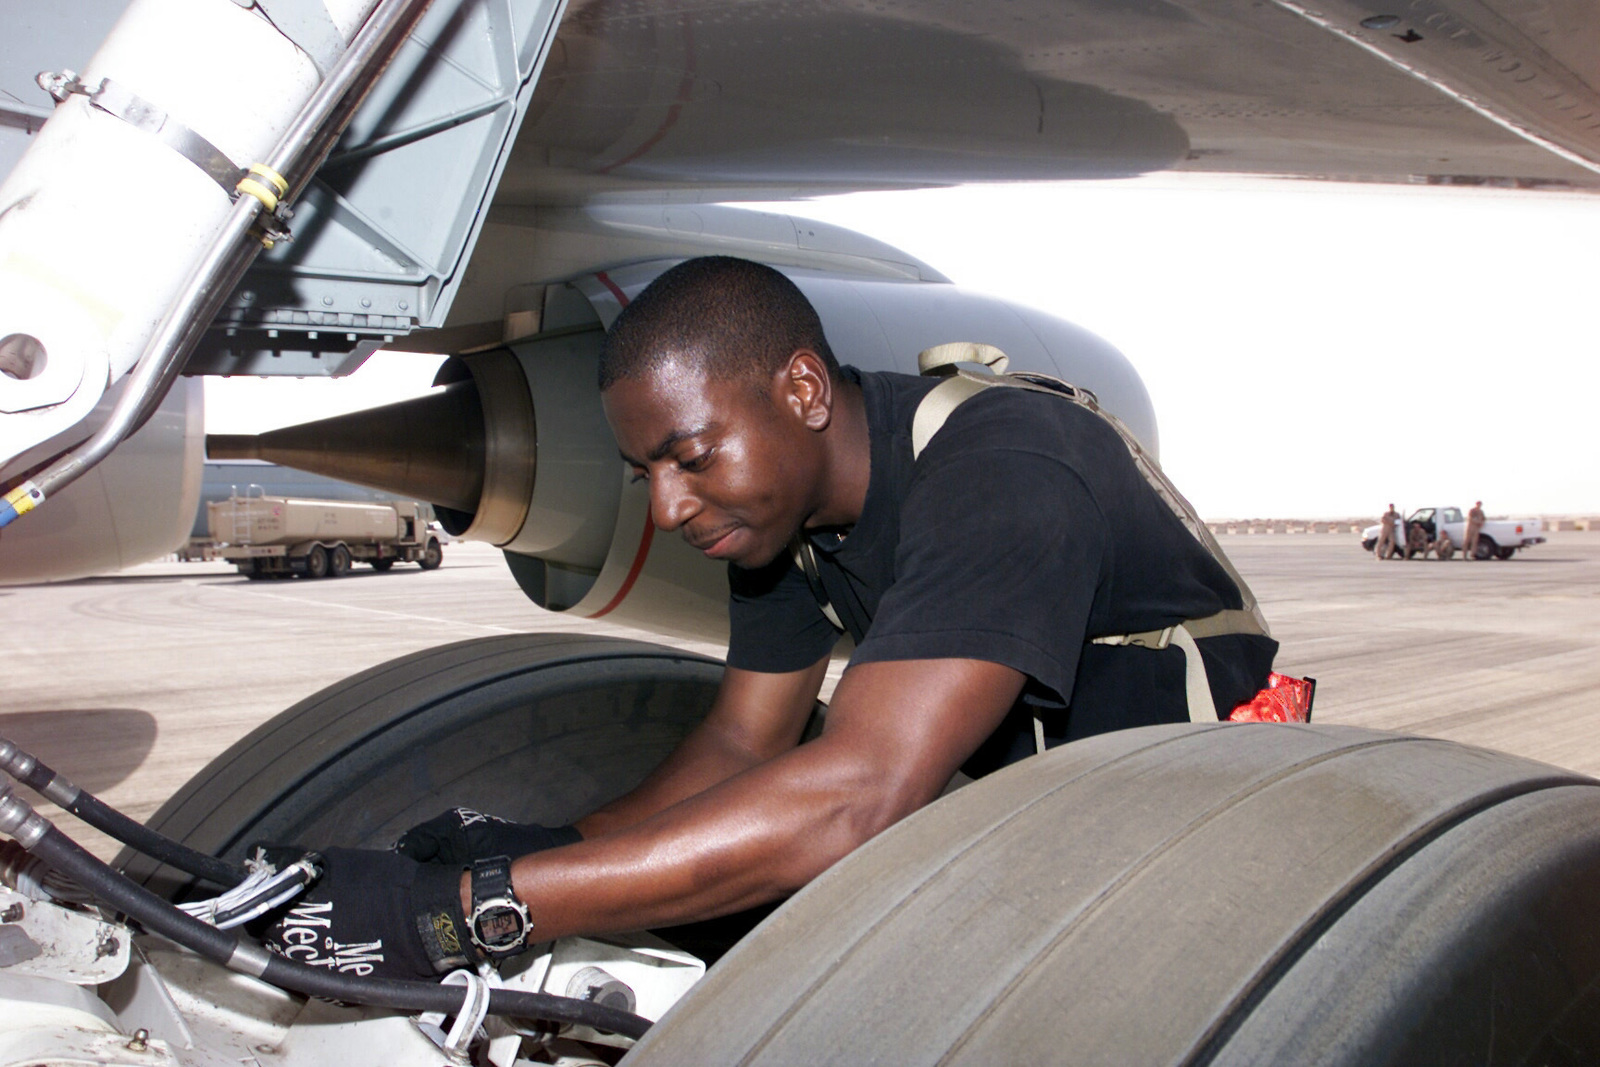 US Air Force (USAF) STAFF Sergeant (SSGT) Carlos Bennett Jr., Electrical and Environmental SPECIALIST, works on the landing gear electrical systems on a USAF RJ-135 Embraer aircraft while deployed to Prince Sultan Air Base (AB), Saudi Arabia, in support of Operation SOUTHERN WATCH